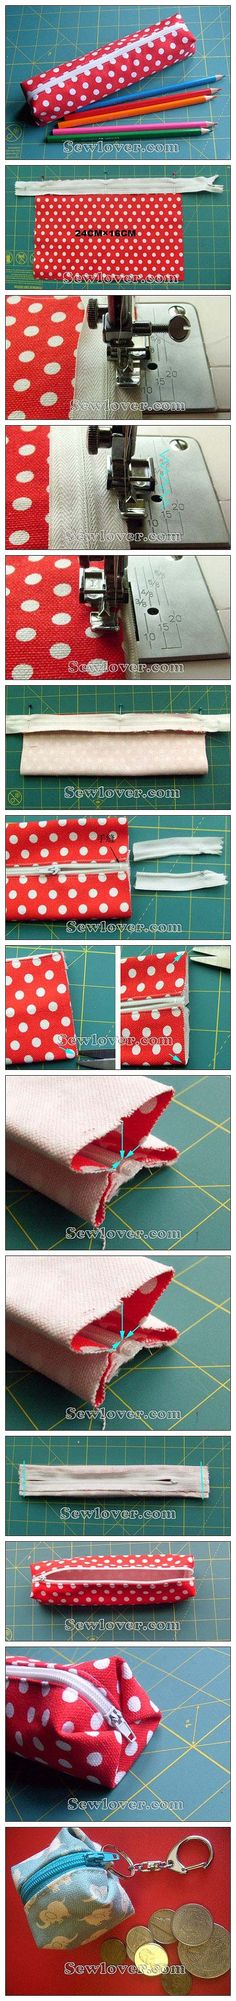 Tutorial voor boxy pouch @ Do It Yourself Remodeling Ideas